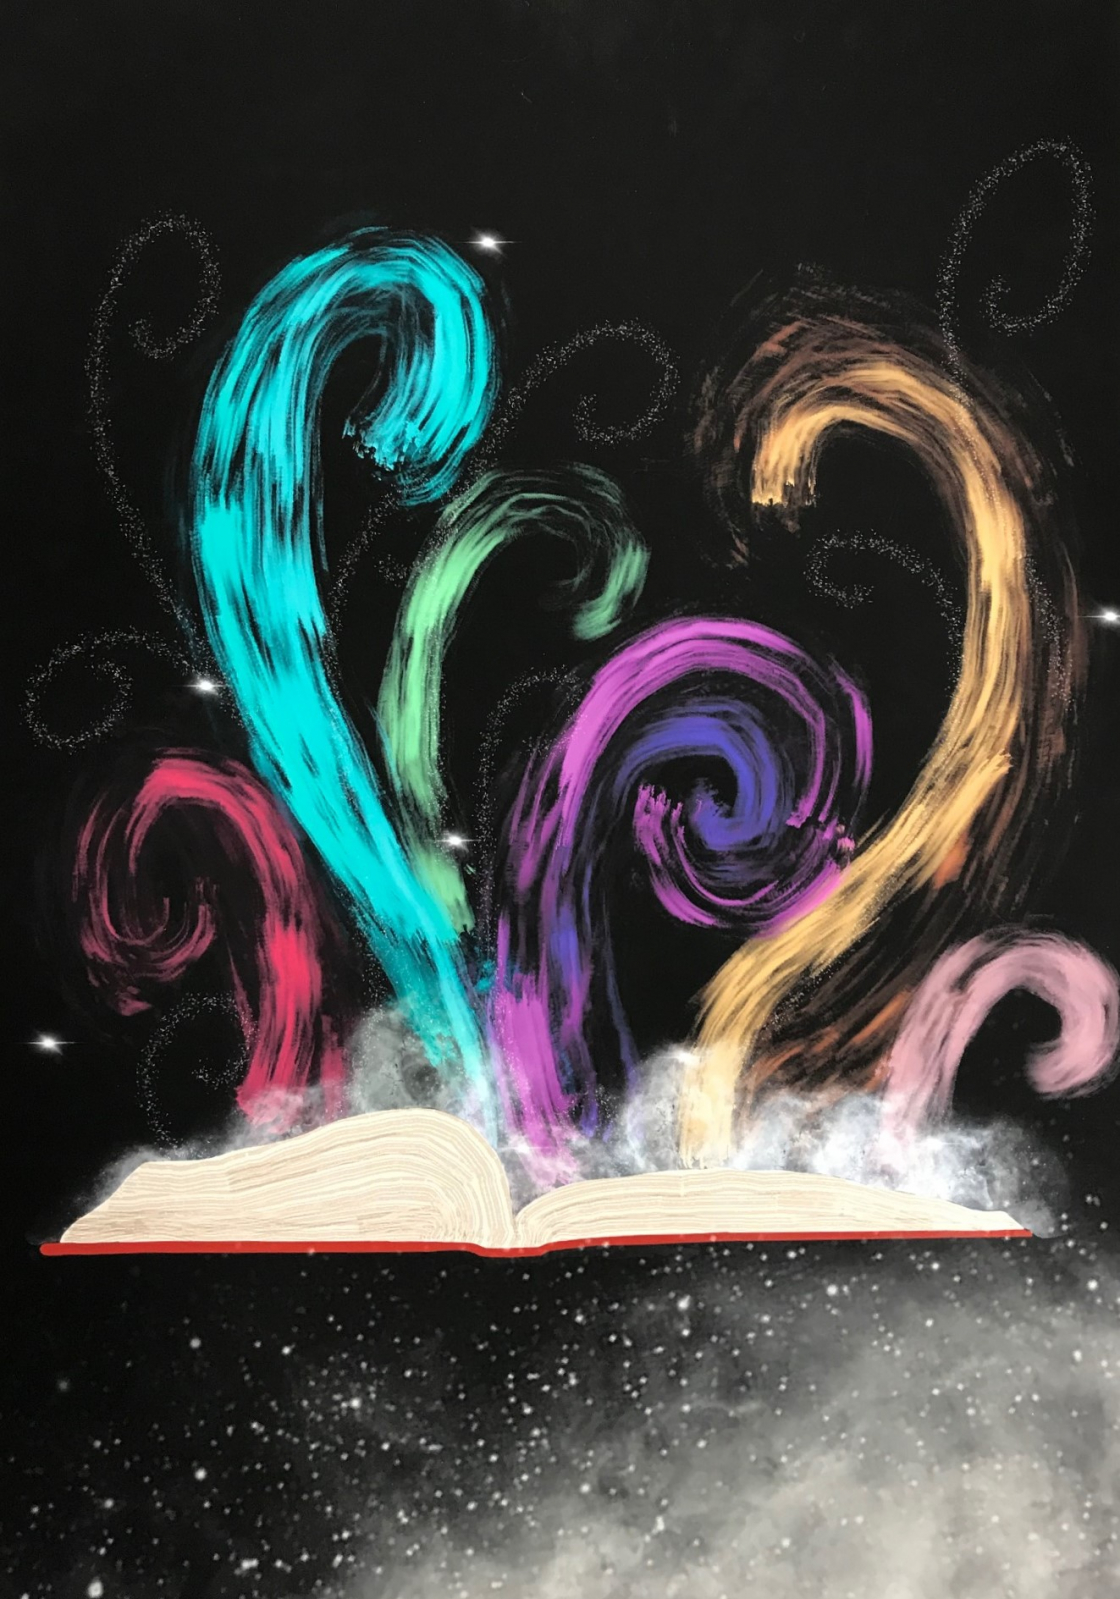 colorful swirls steaming from an open book